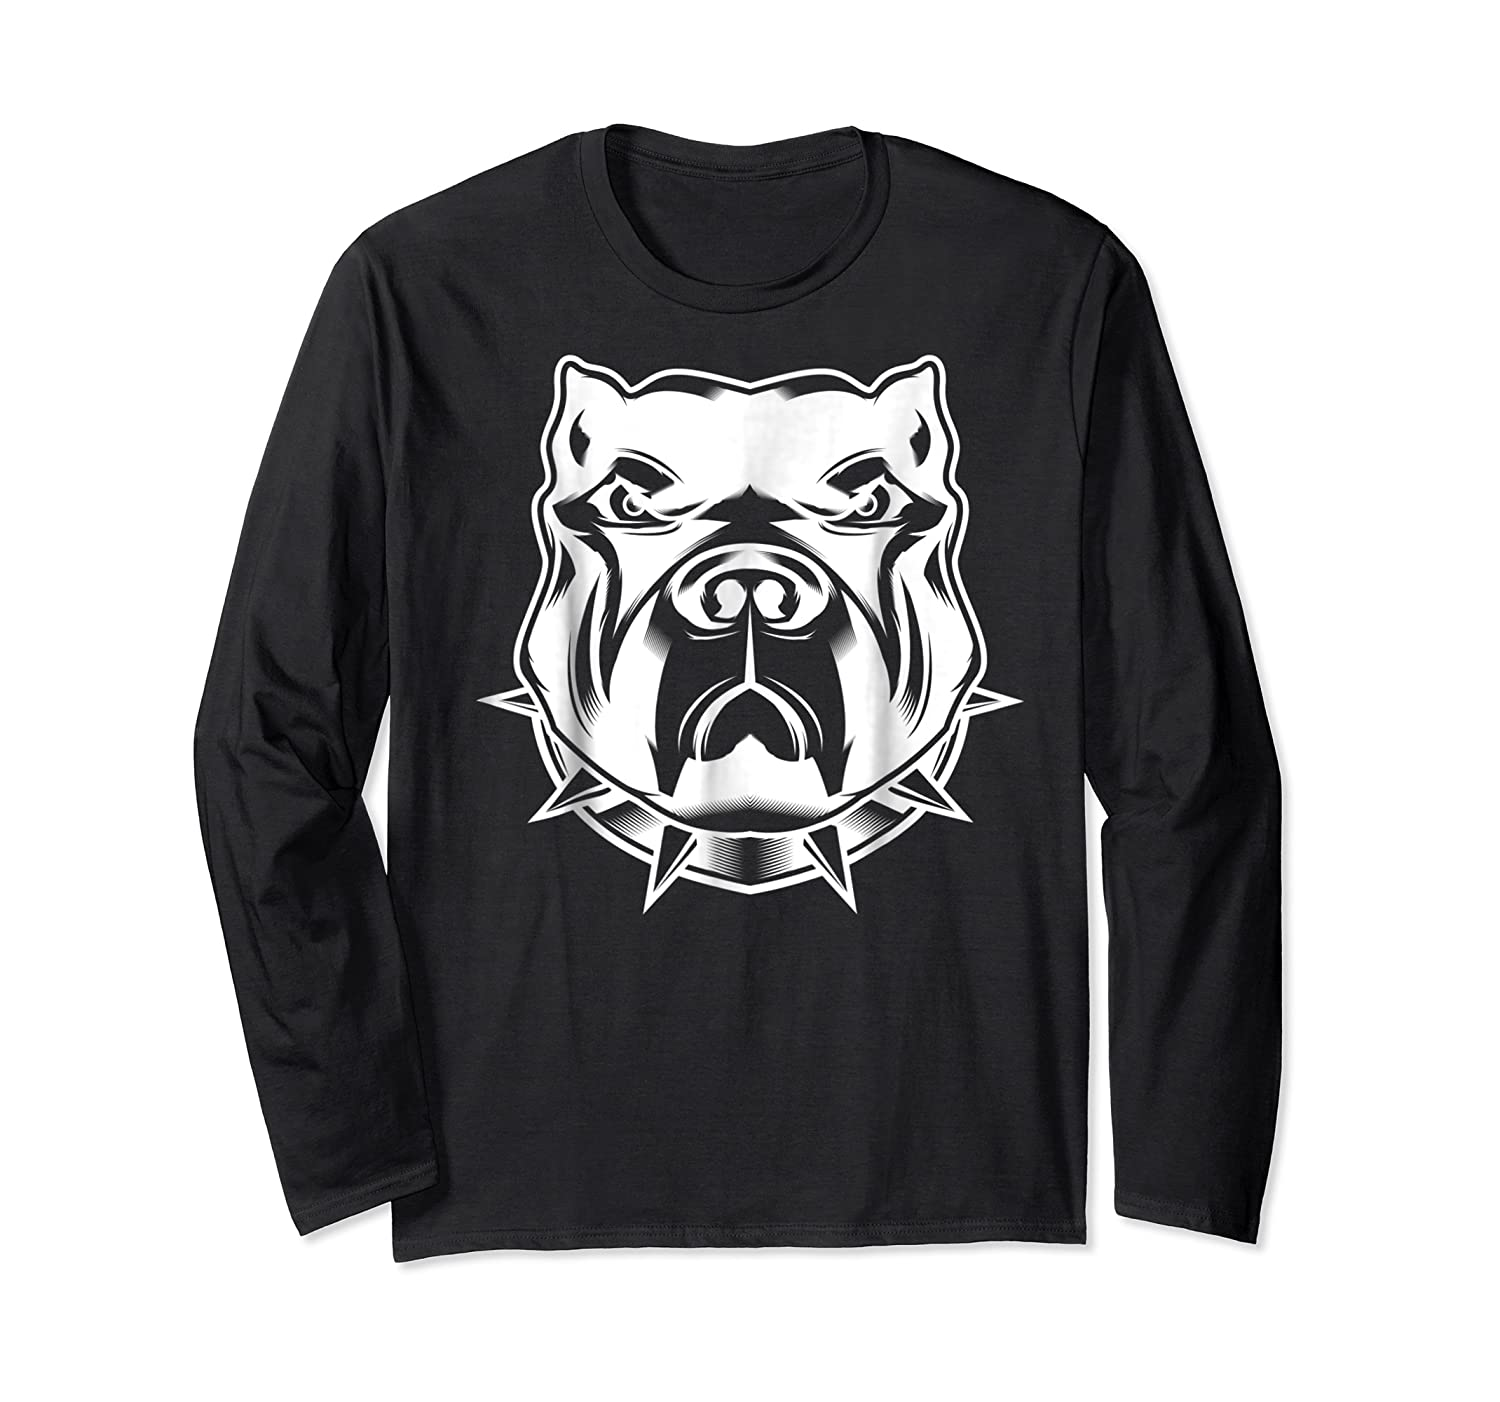 Pit Bull Face T For Pitbull And Apbt Lovers Shirts Long Sleeve T-shirt